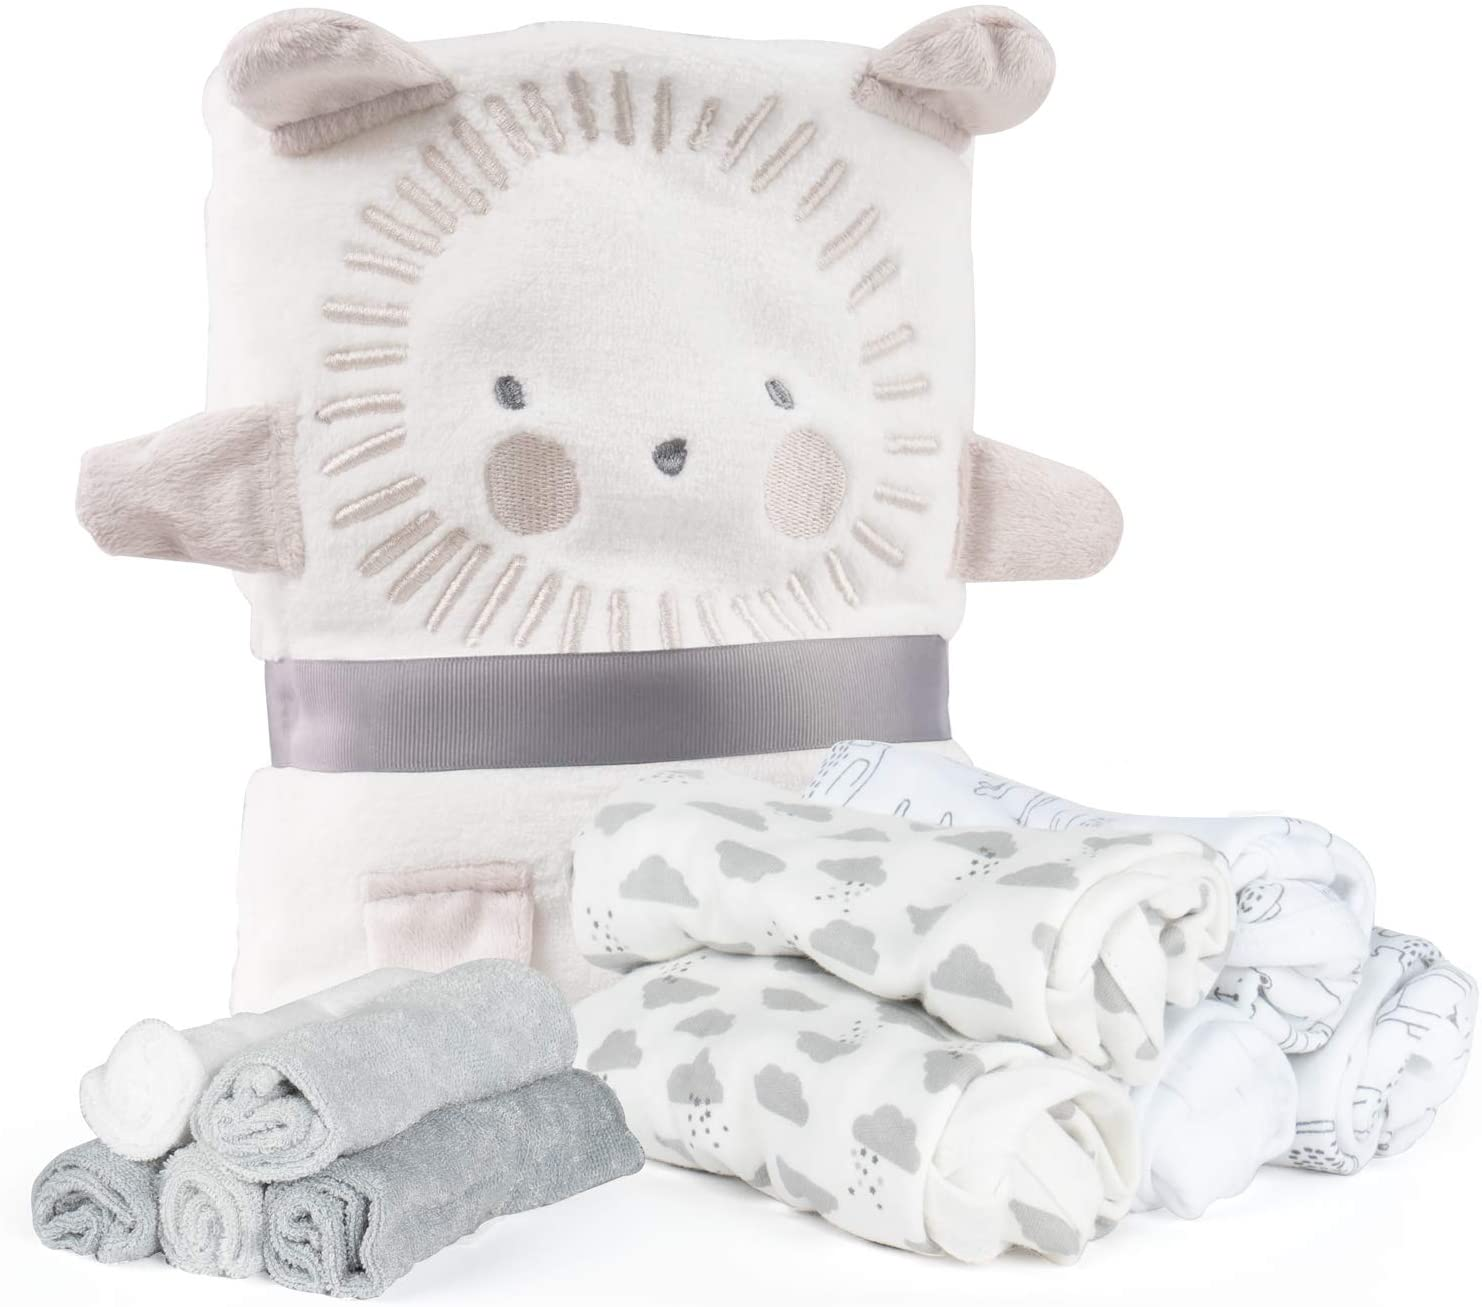 Lily and Page Baby Gifts for Newborn Boys, Girls Shower Unique Gift Set Plush Travel Blanket (Baby Neutral Set, Baby)